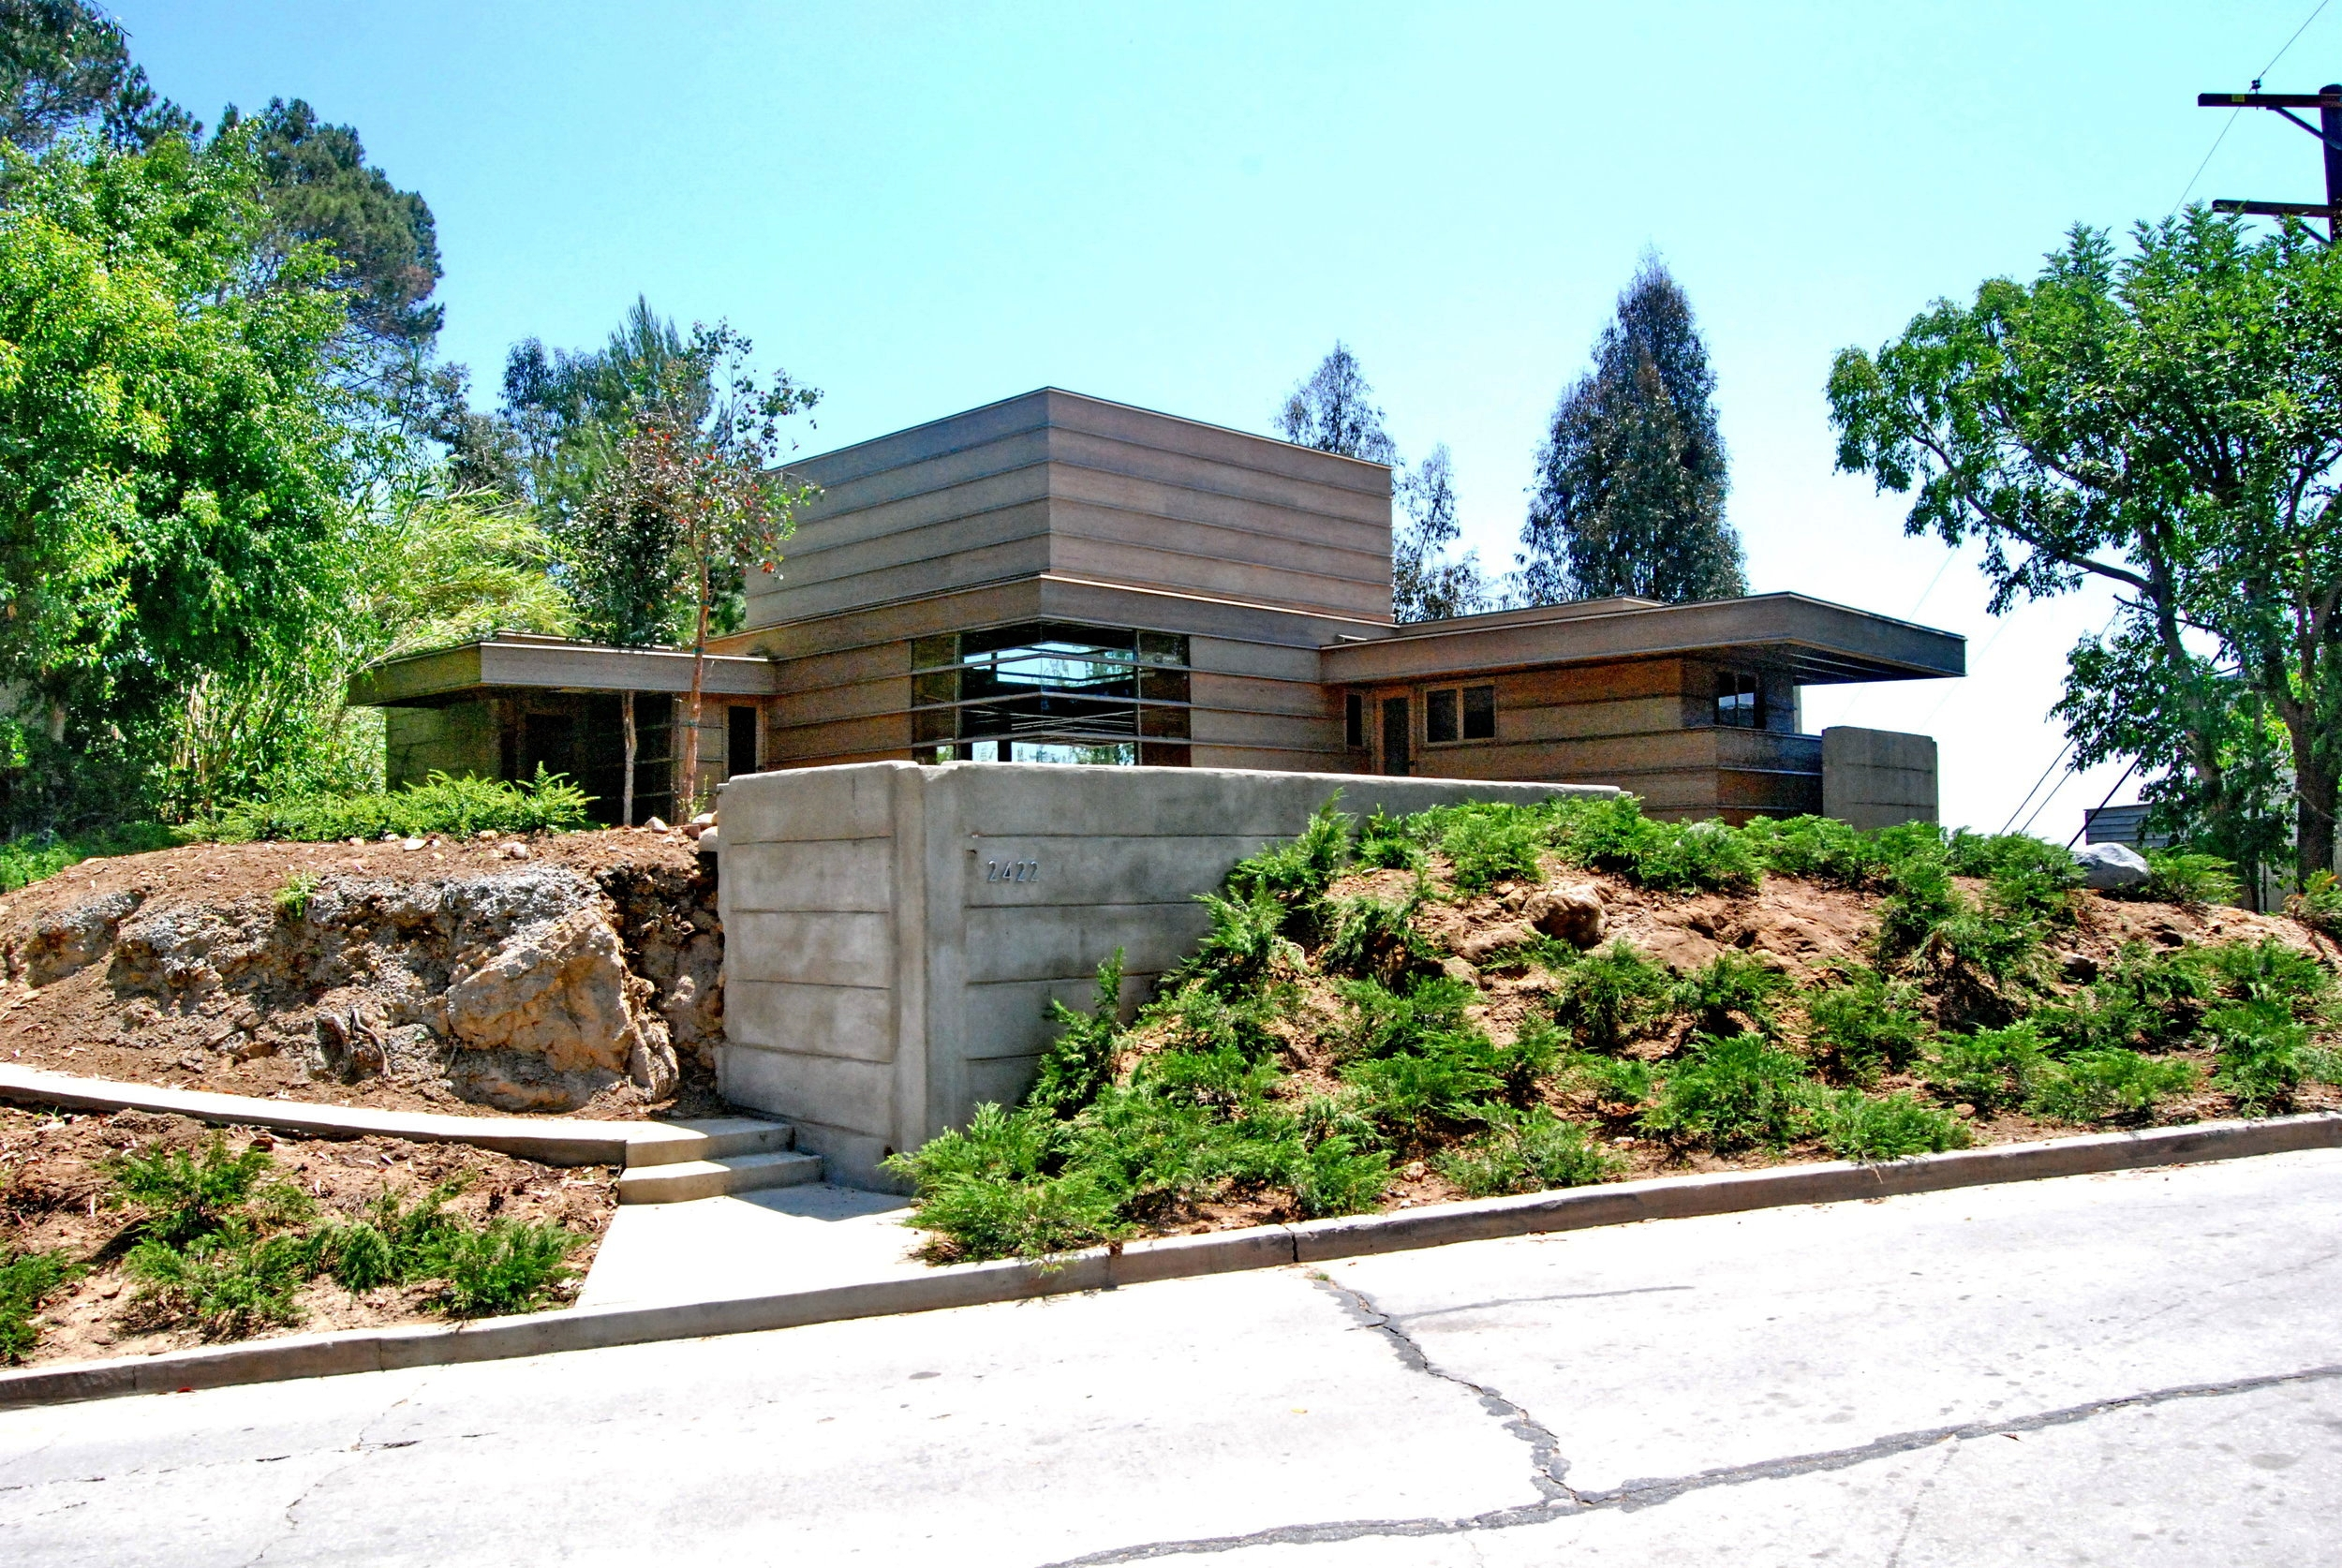 The James Eads How House in Silverlake - Built in 1925 by famous architect Rudolf Schindler